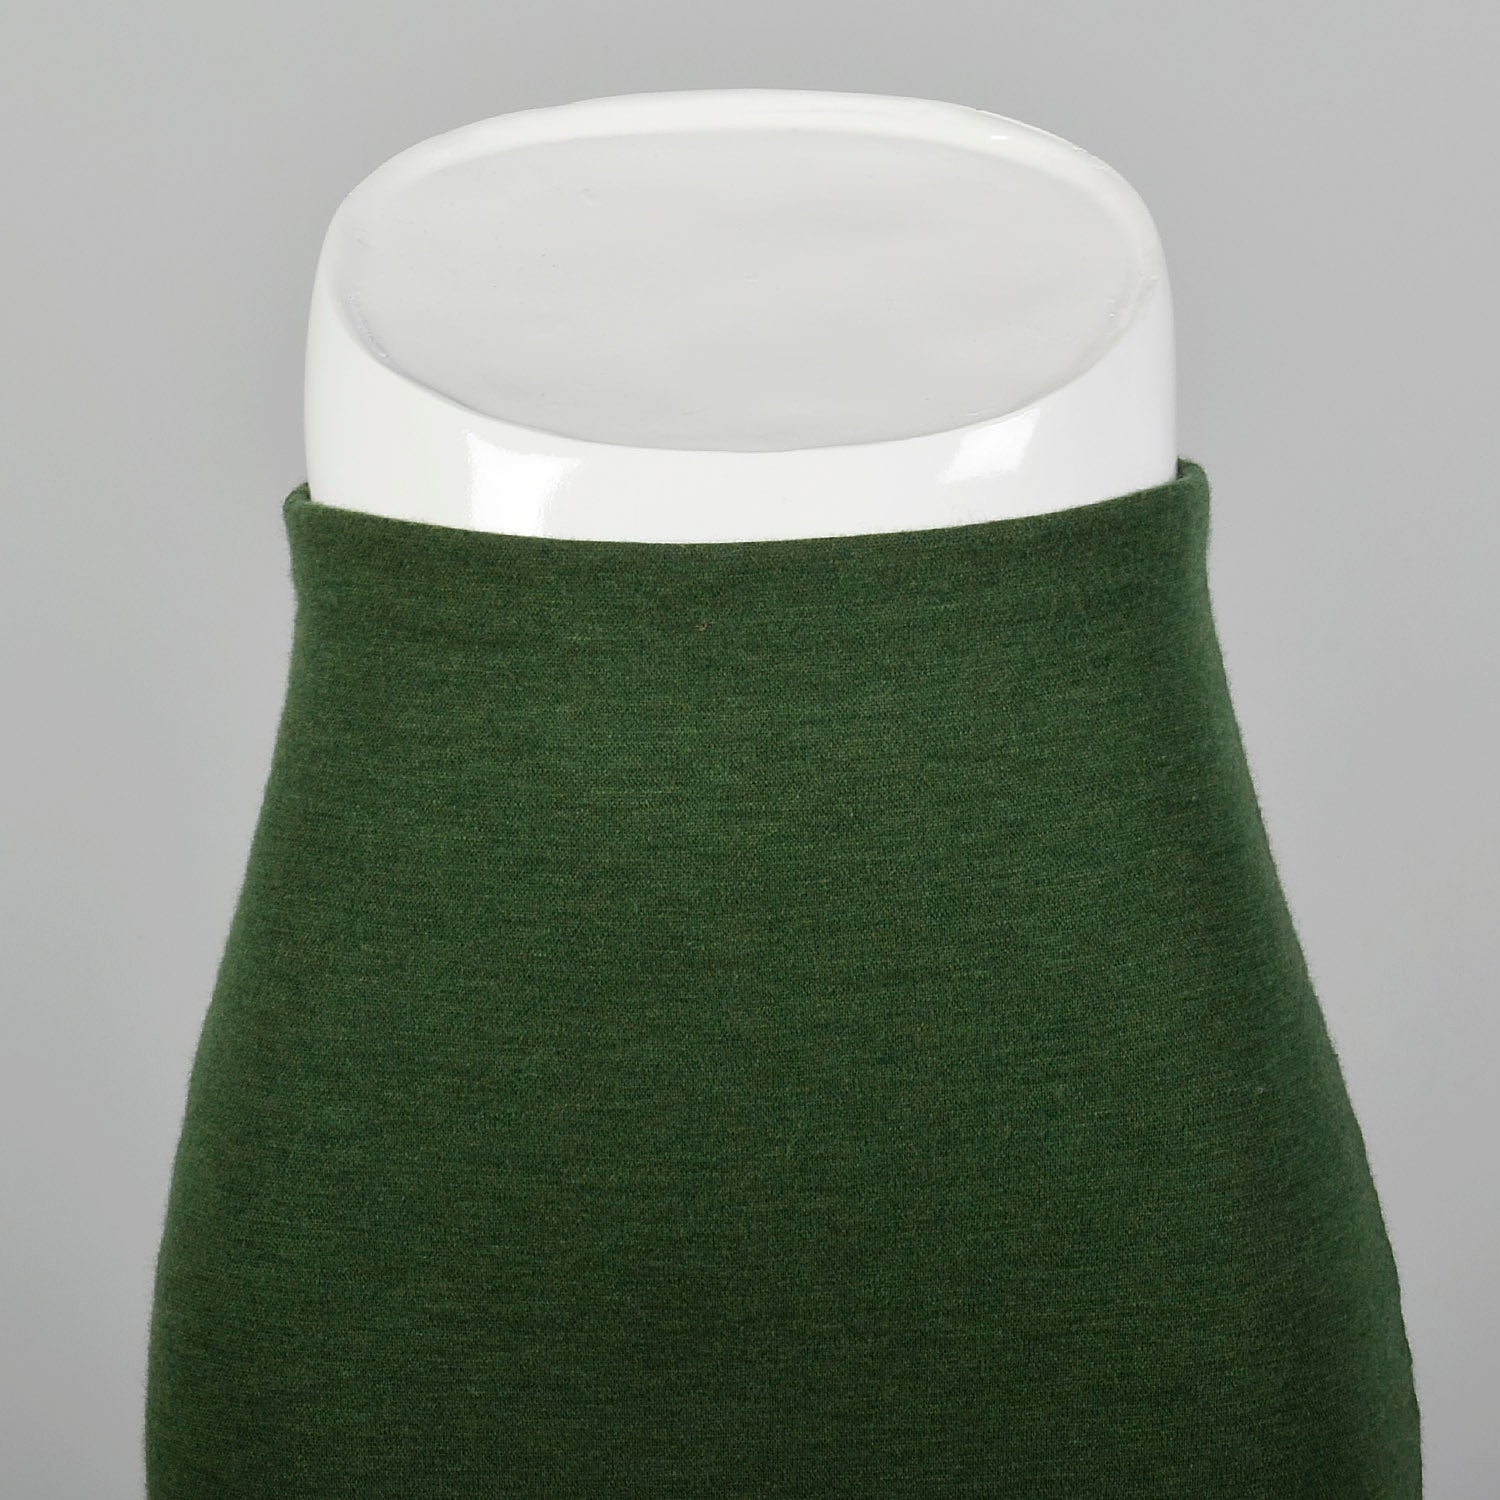 Small Romeo Gigli 1990s Green Knit Skirt